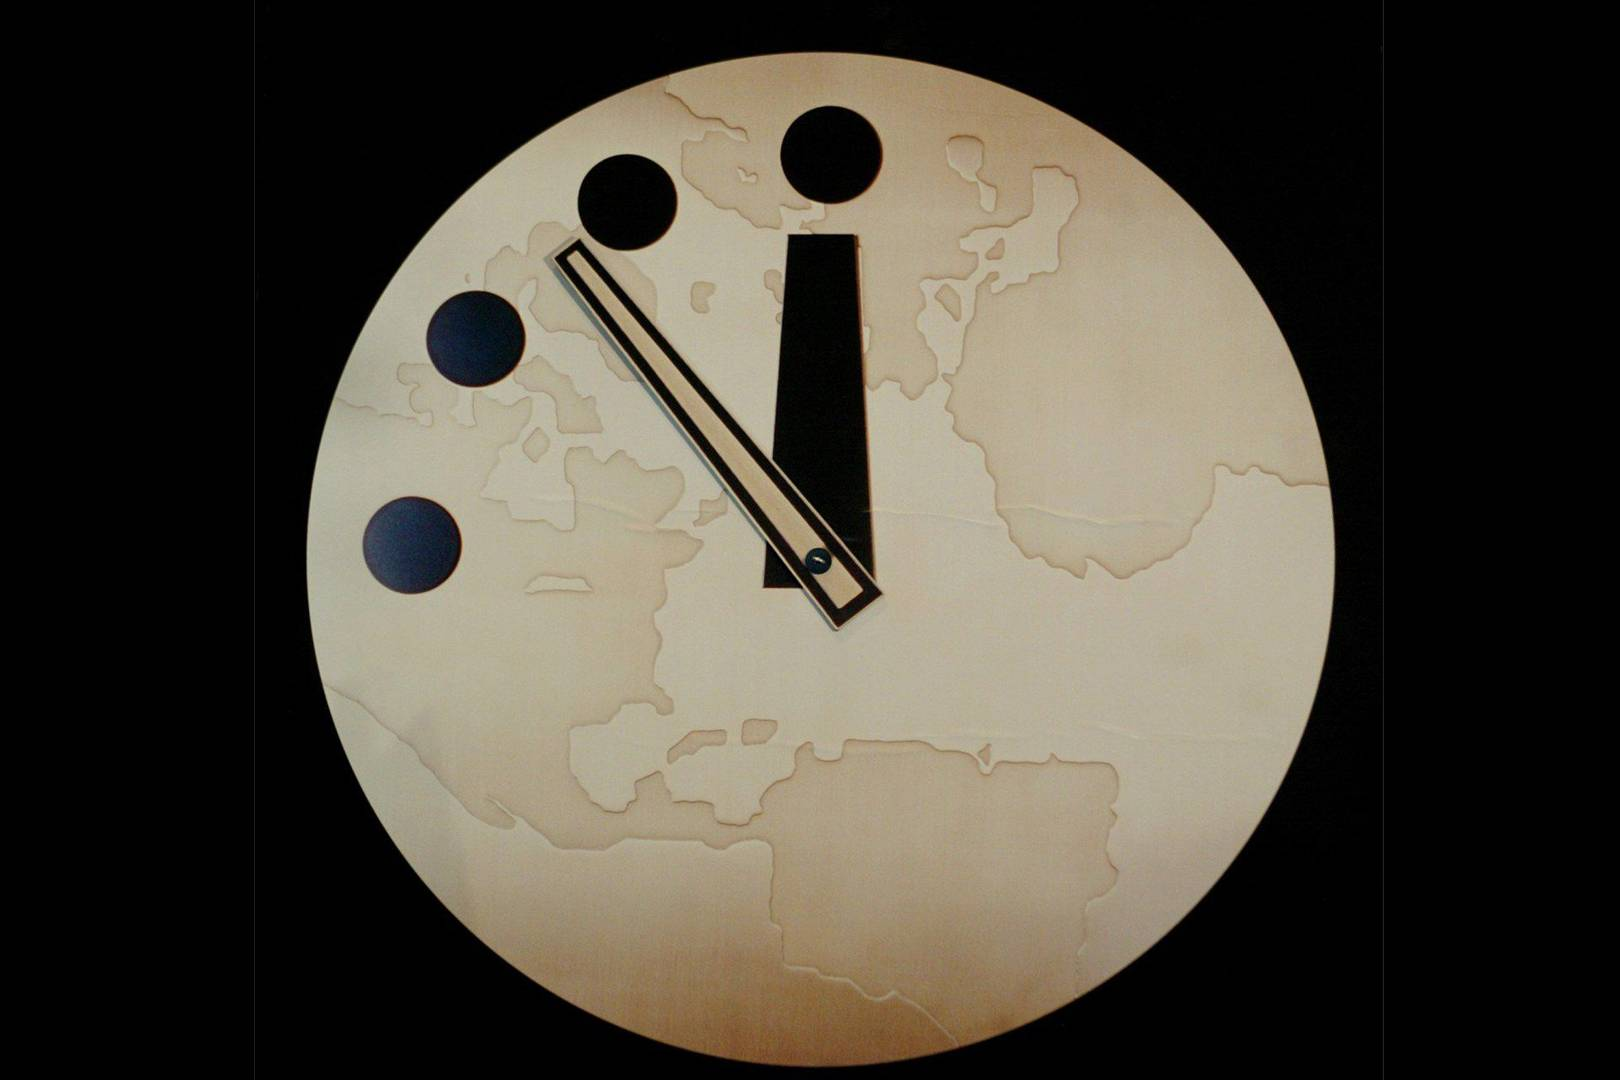 The Doomsday Clock: what is it and why does it matter? | WIRED UK